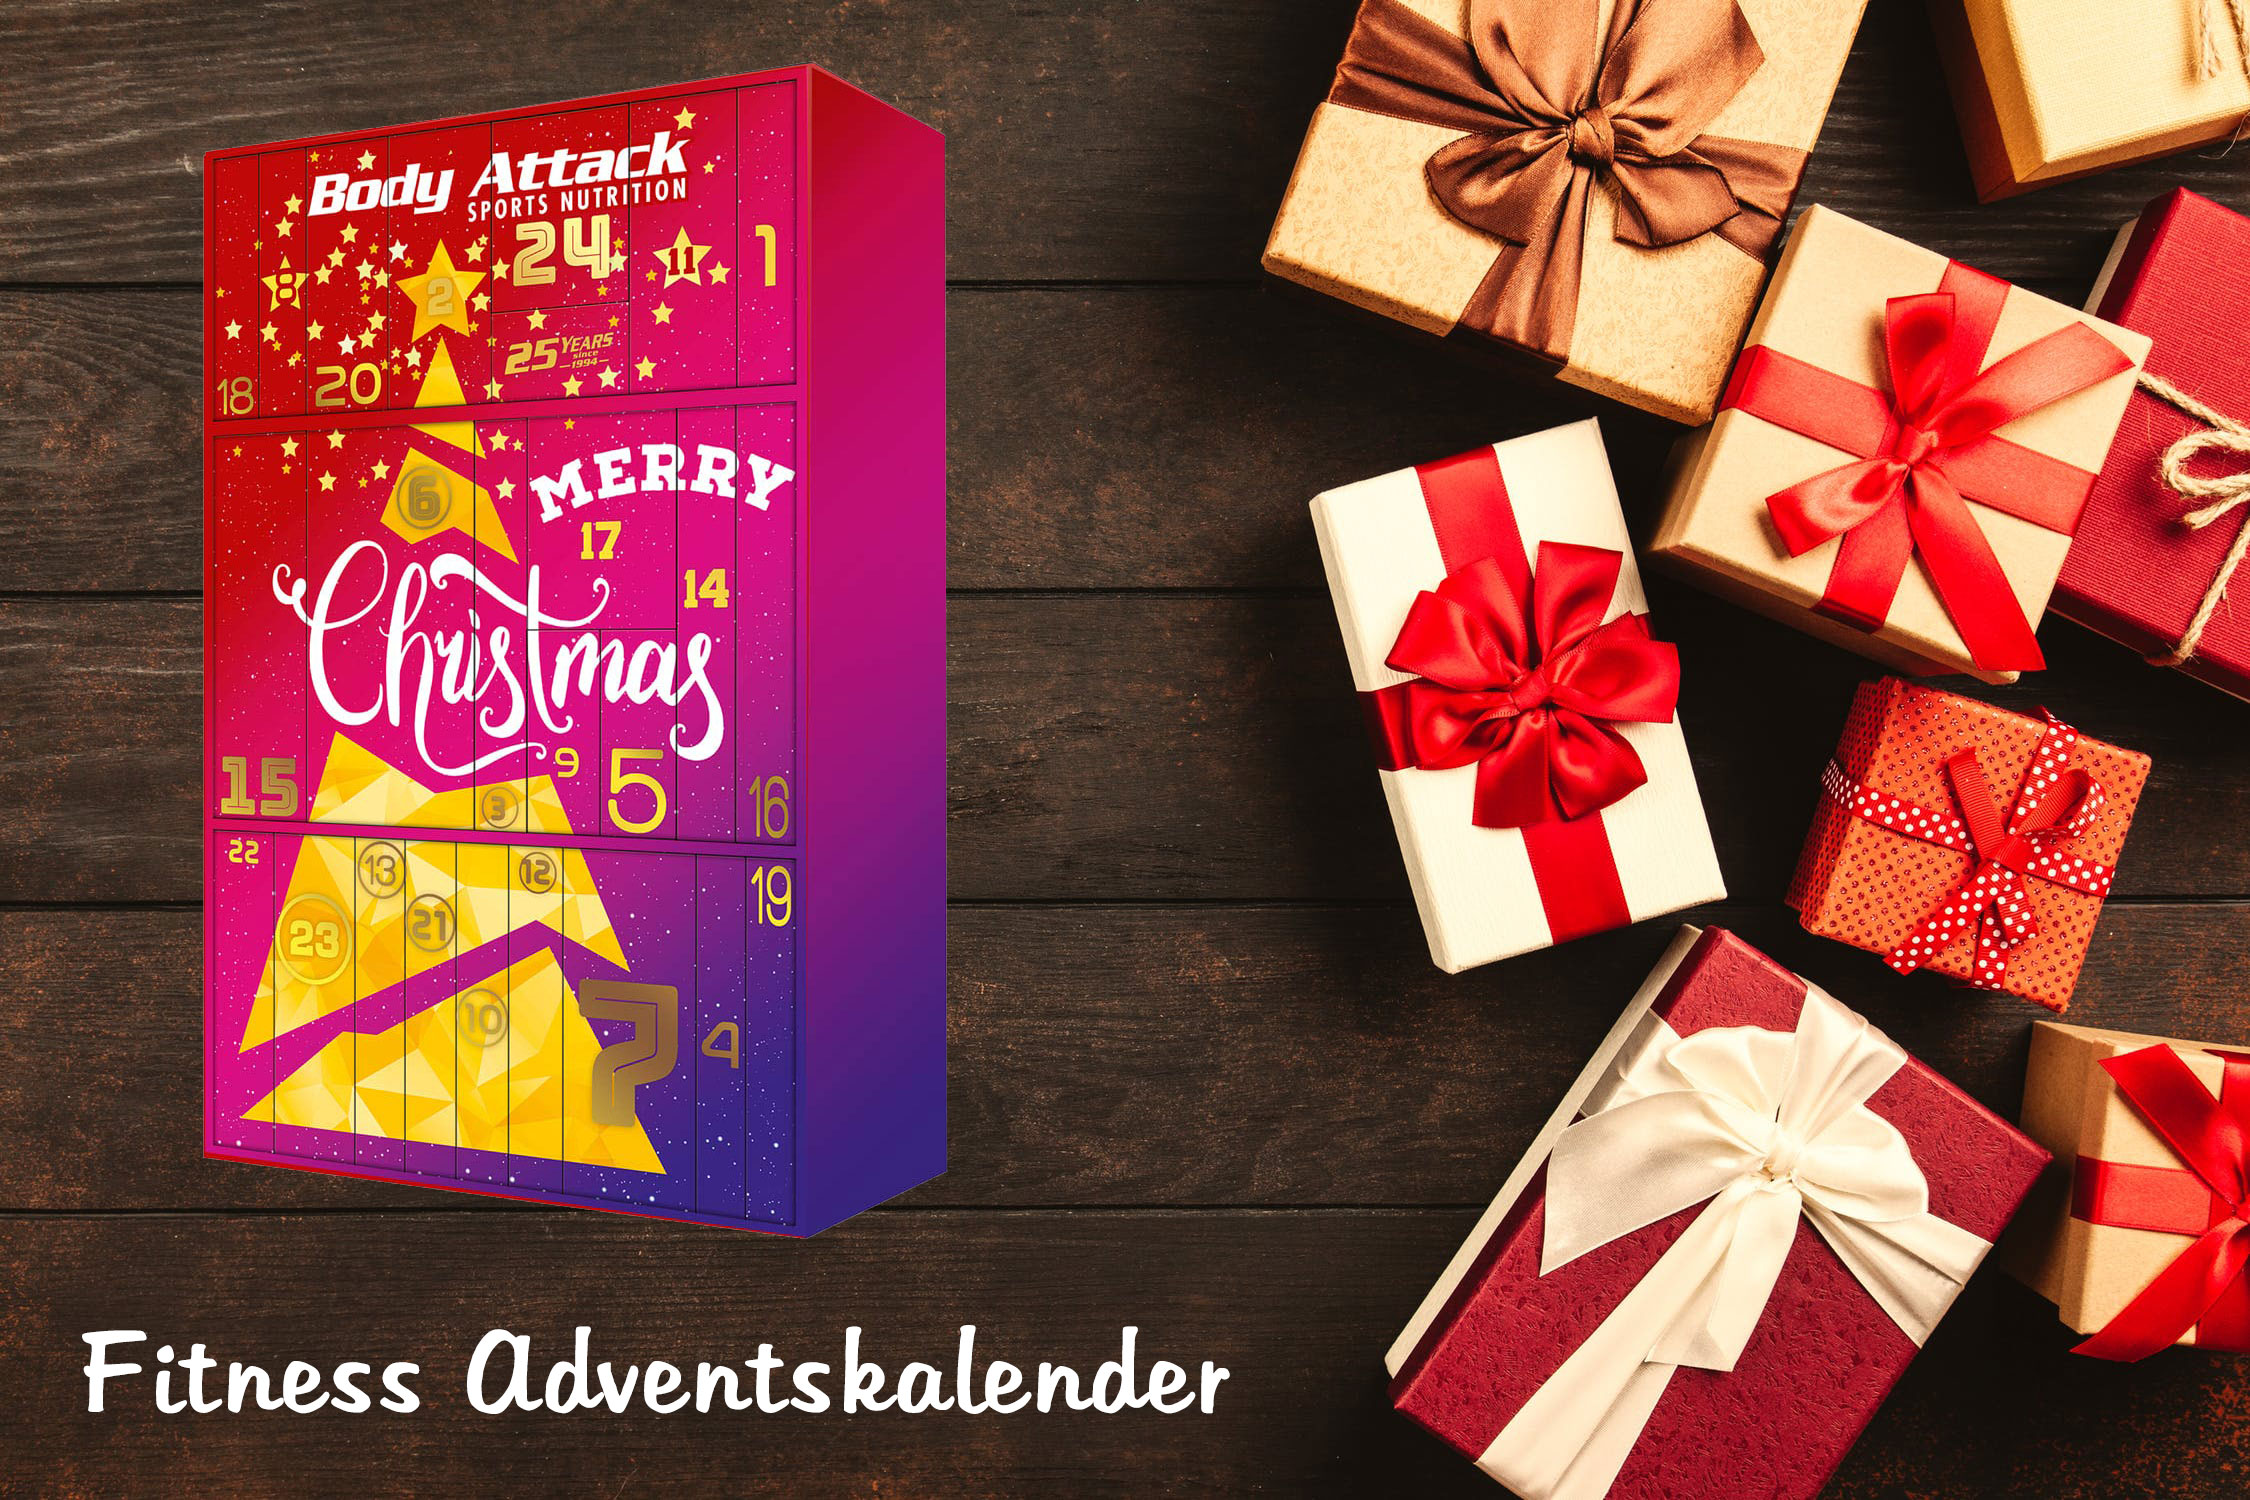 Fitness Adventskalender 2019